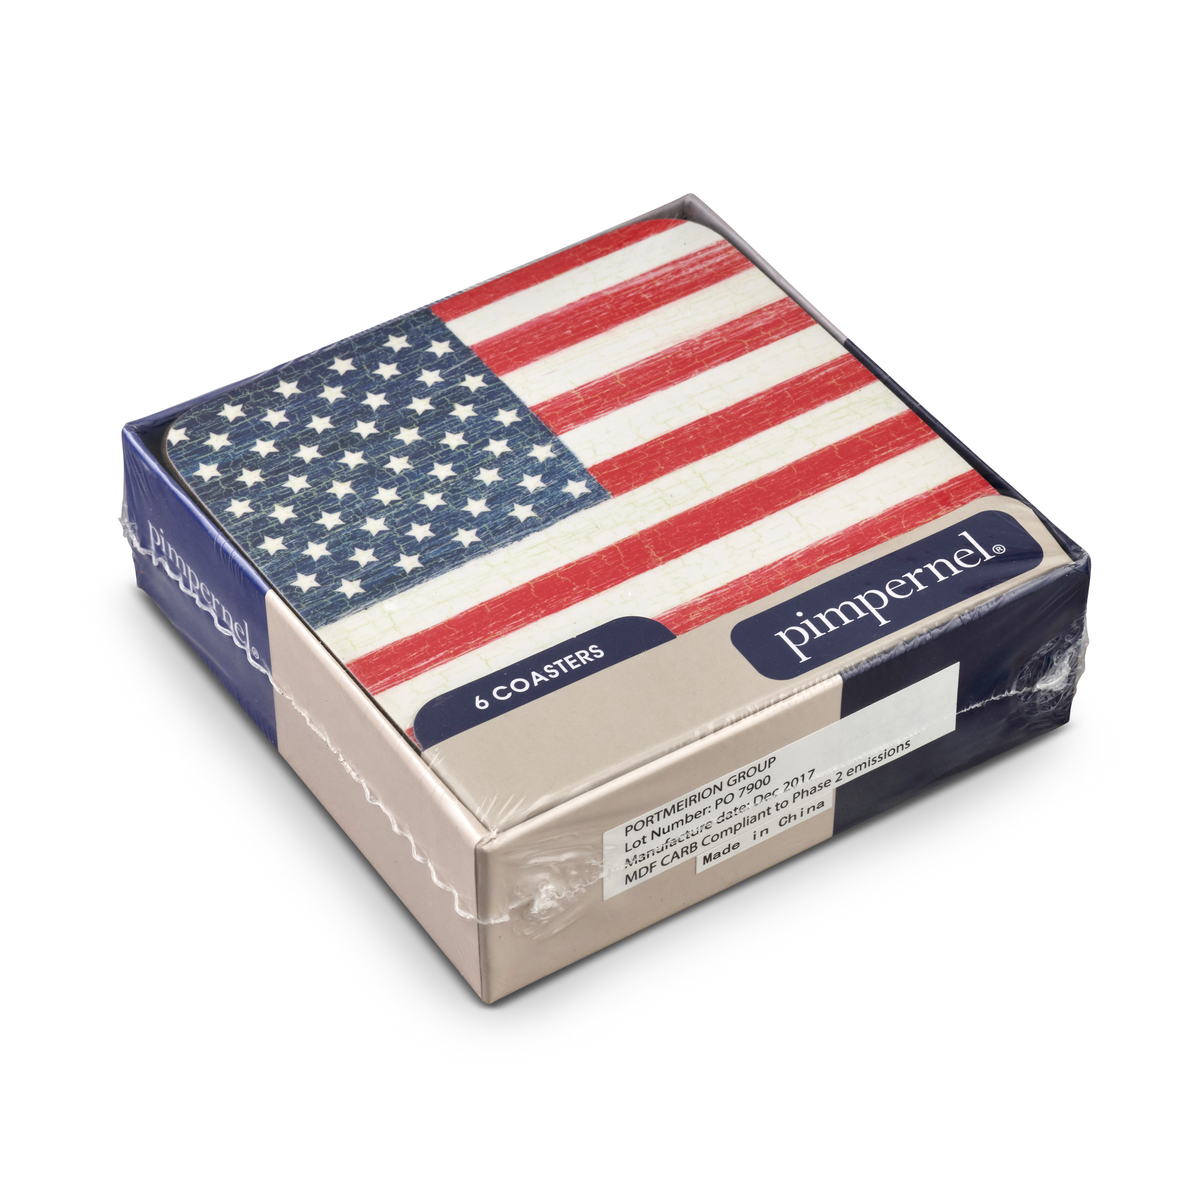 Pimpernel American Flag Coasters Set of 6 image number 3